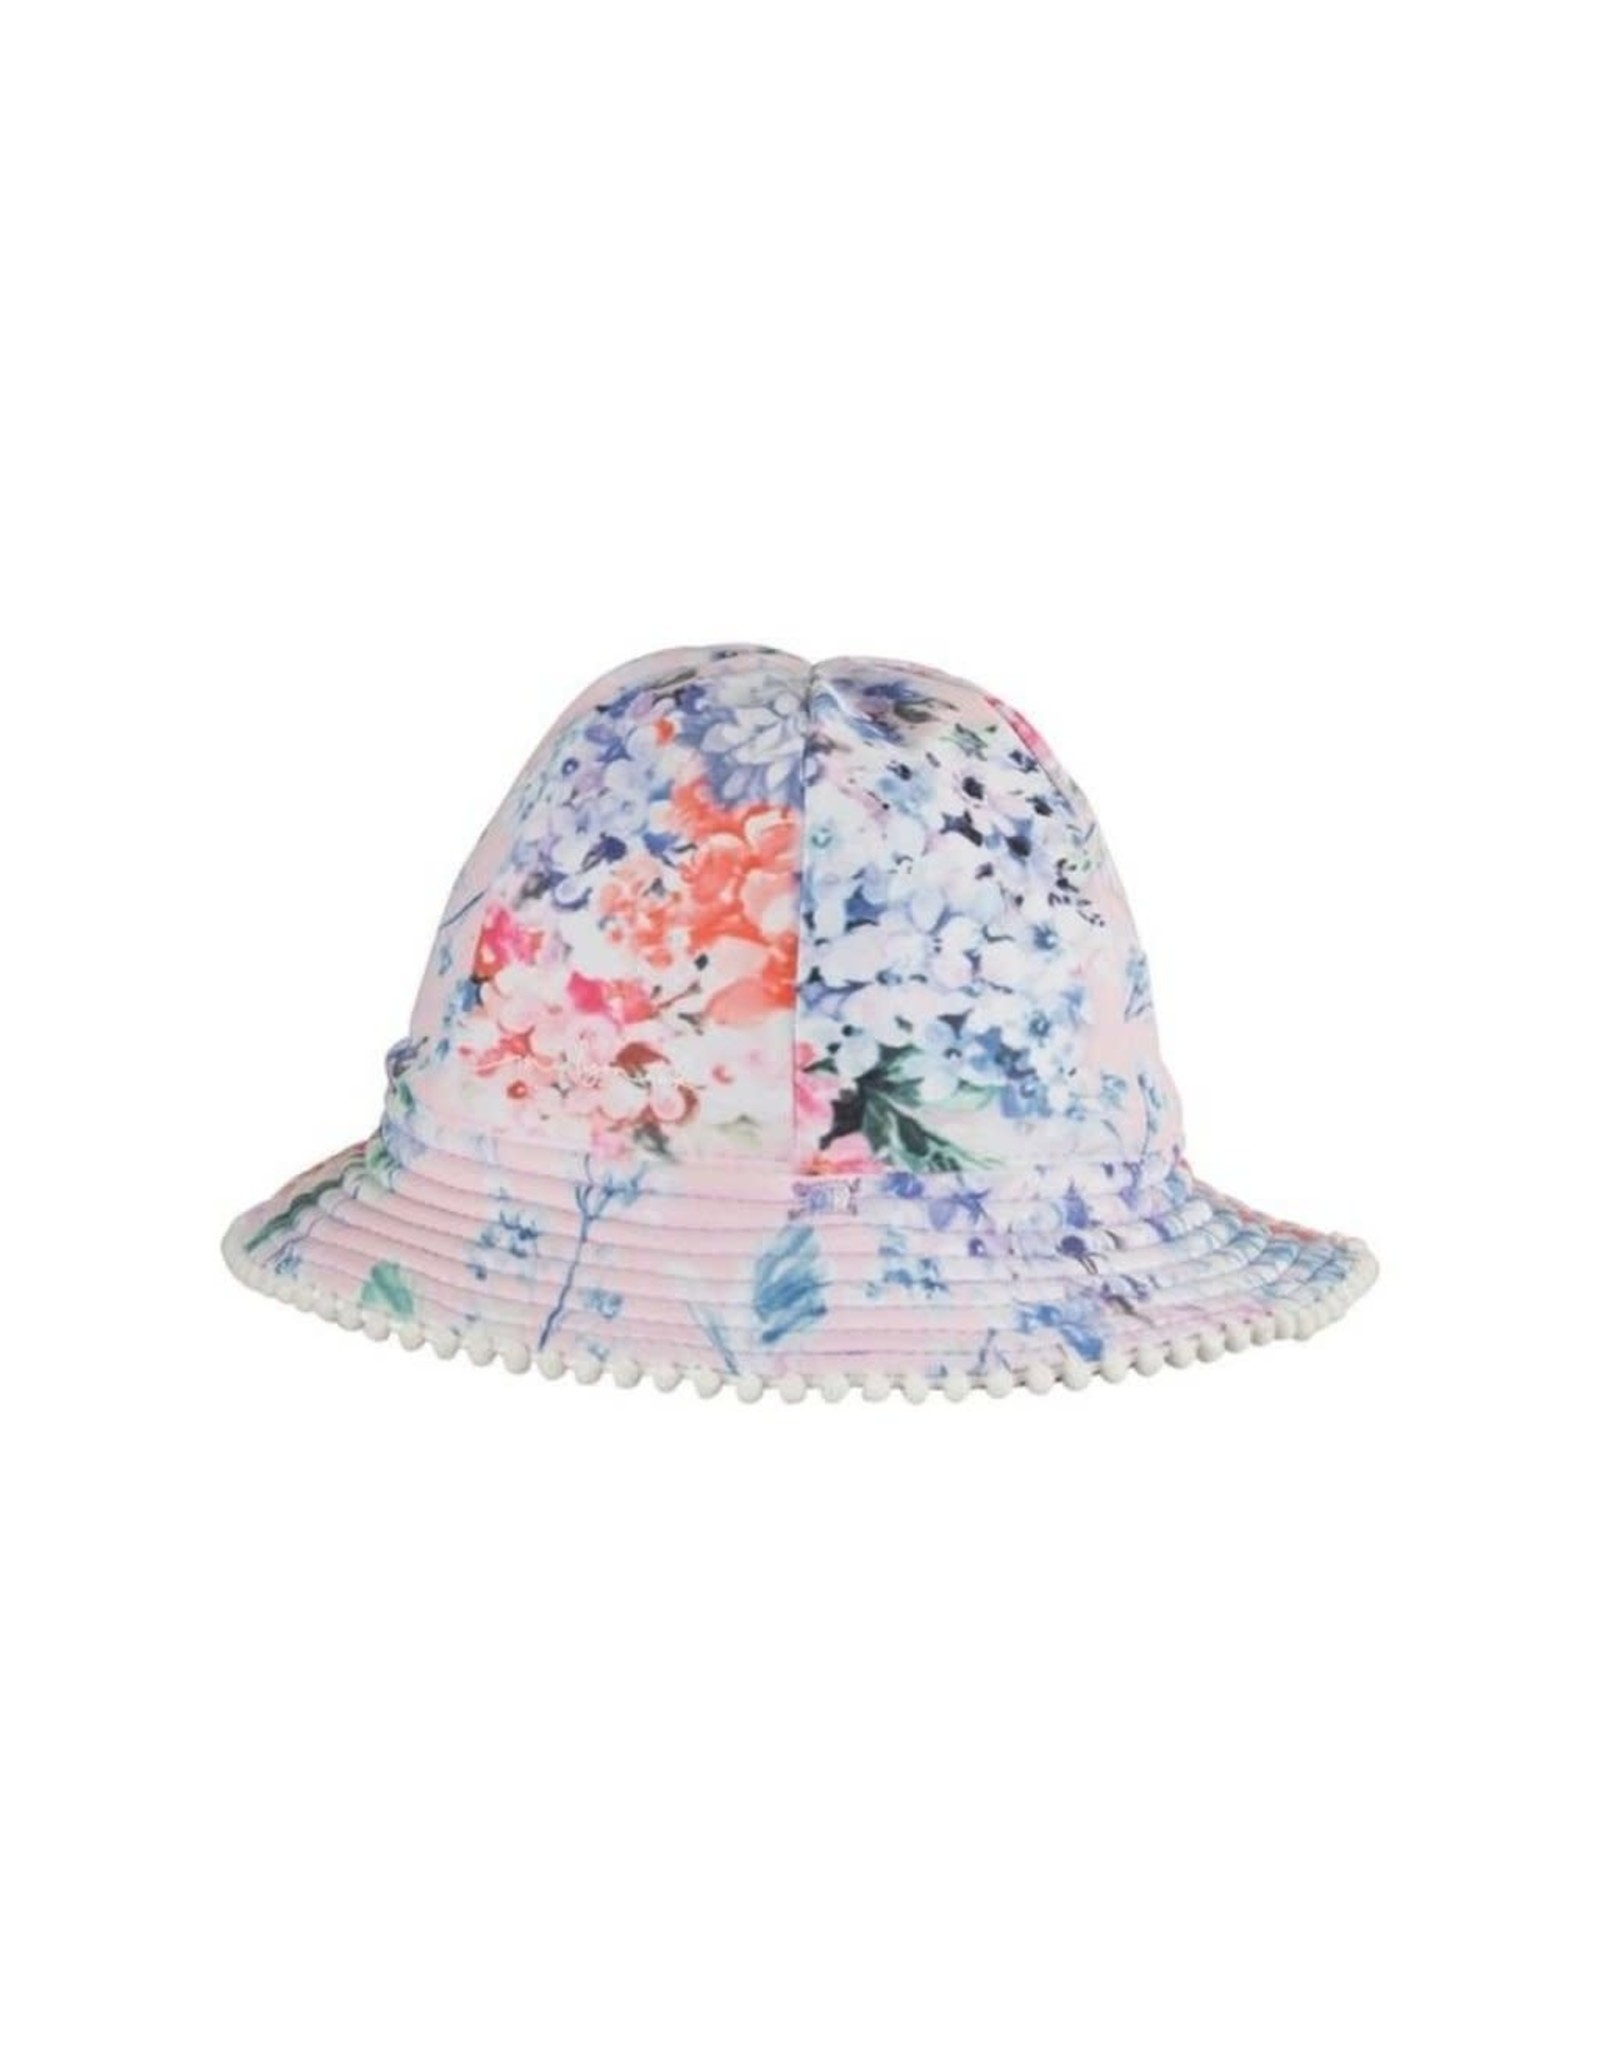 EARTH NYMPH EARTH NYMPH COCO BUCKET HAT